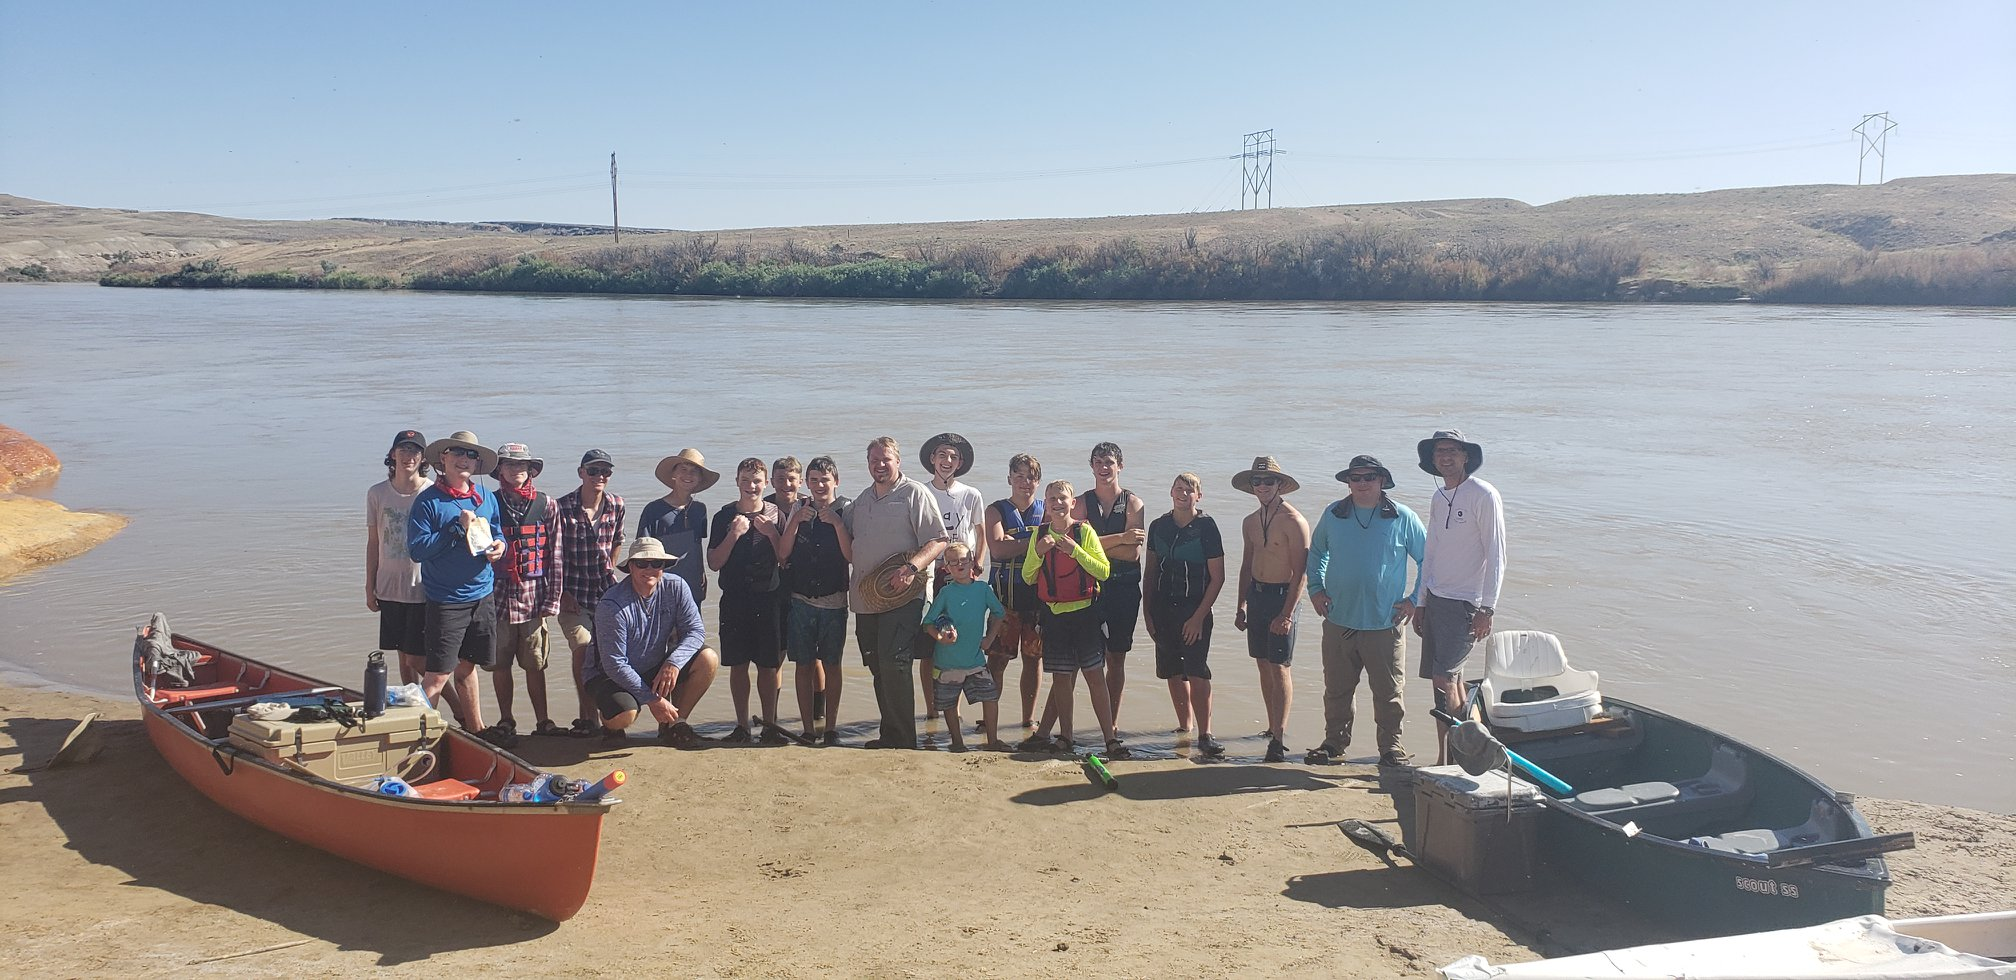 More than 20 Boy Scouts and leaders from Cedar City were rescued by{ }Emery County Sheriff's Office (ECSO) personnel from the Green River on Tuesday. (Photo: Emery County Sheriff's Office / Facebook)